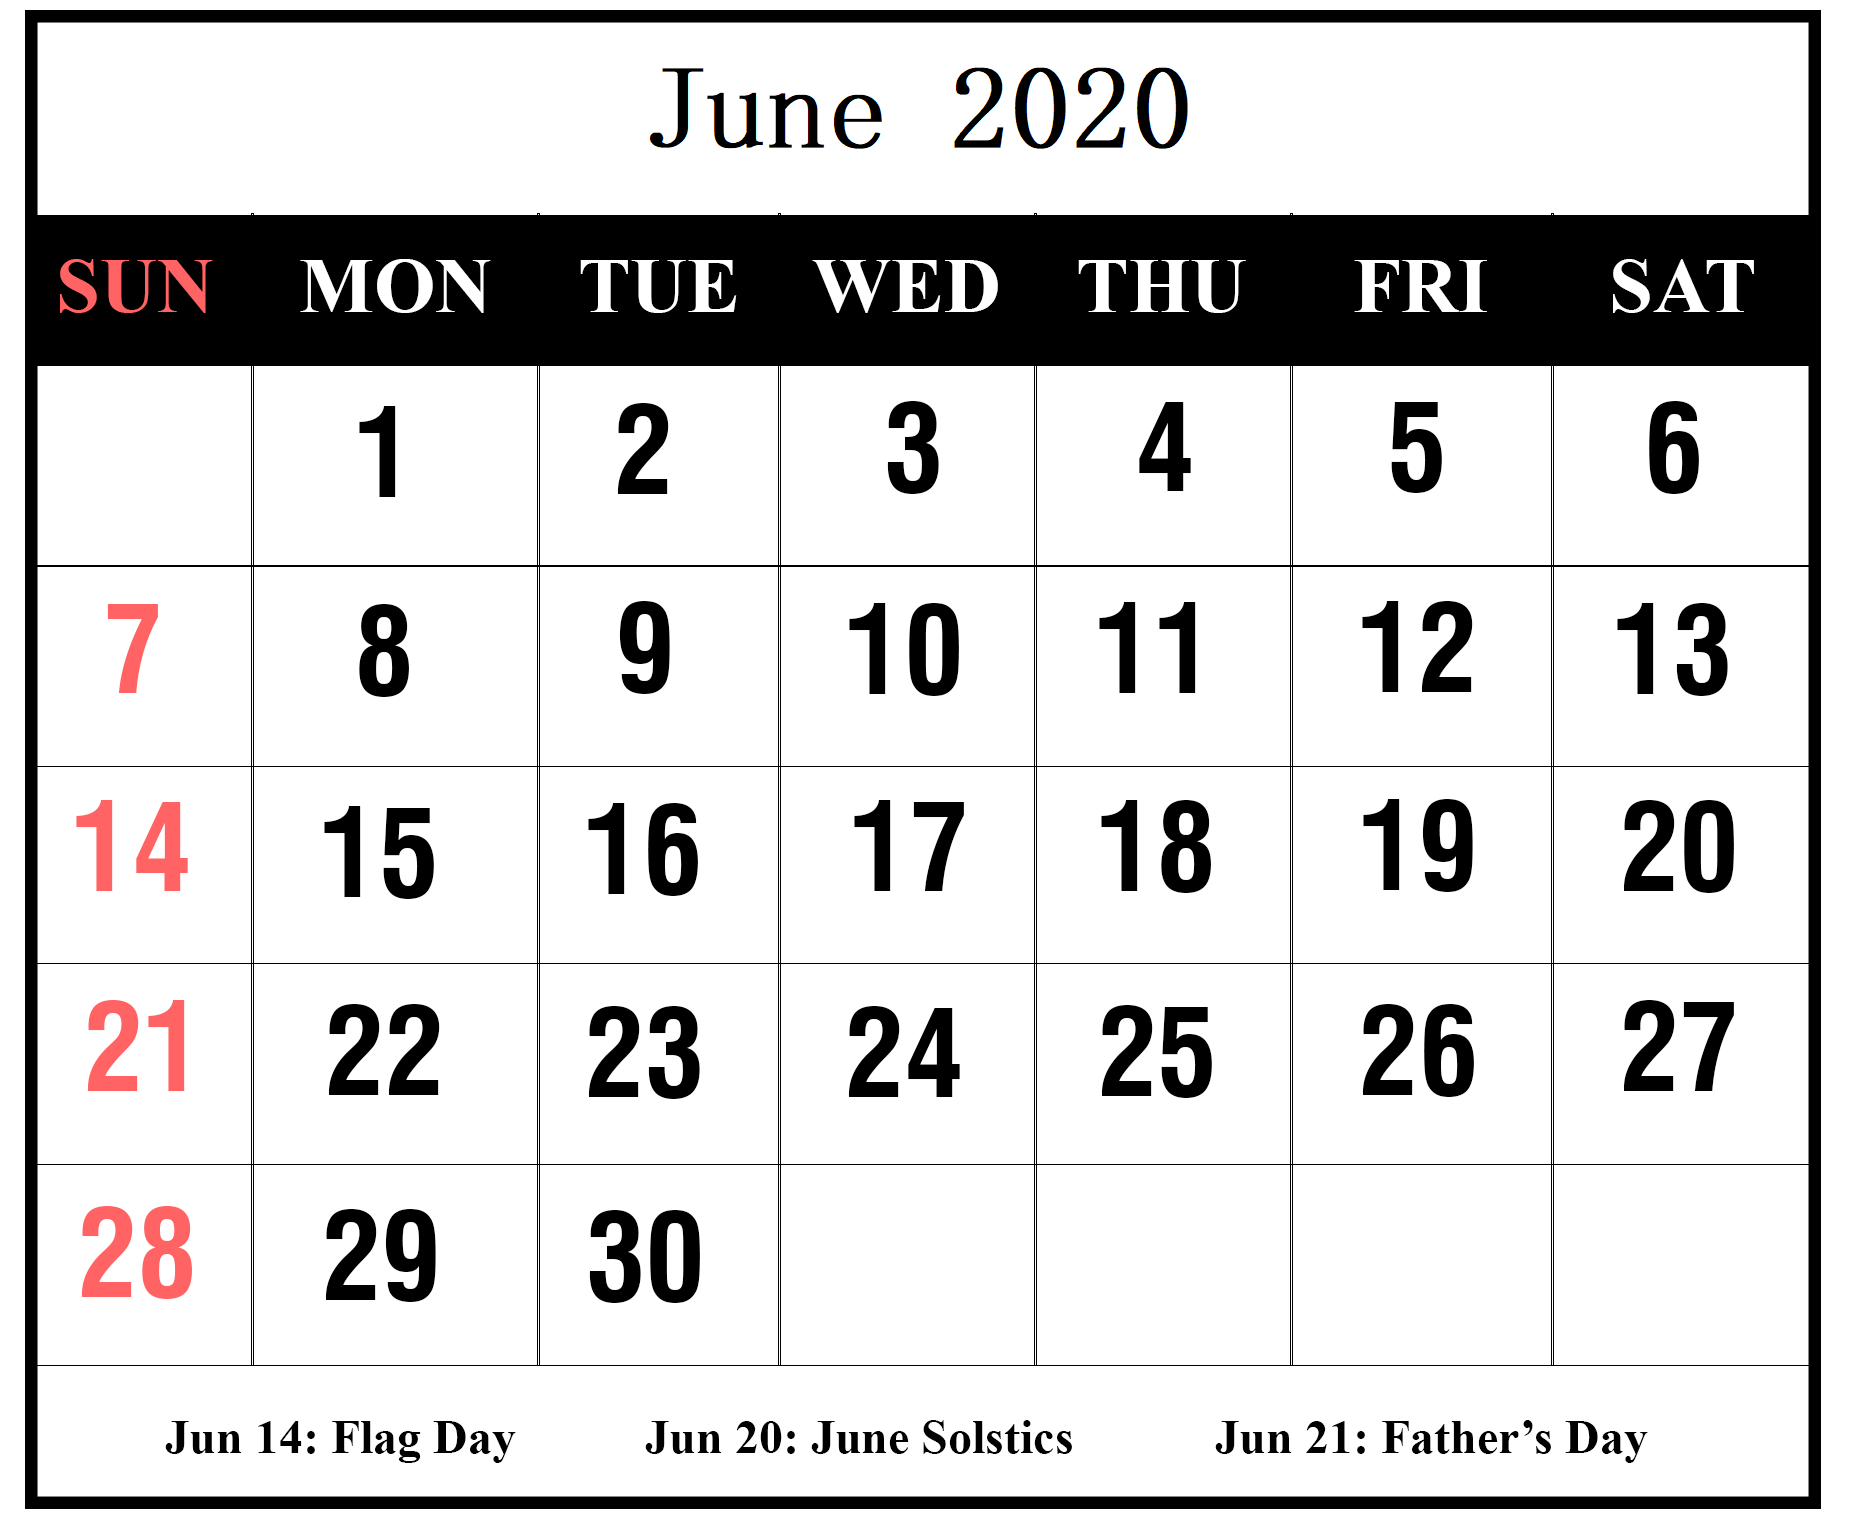 2020 June Calendar With Holidays